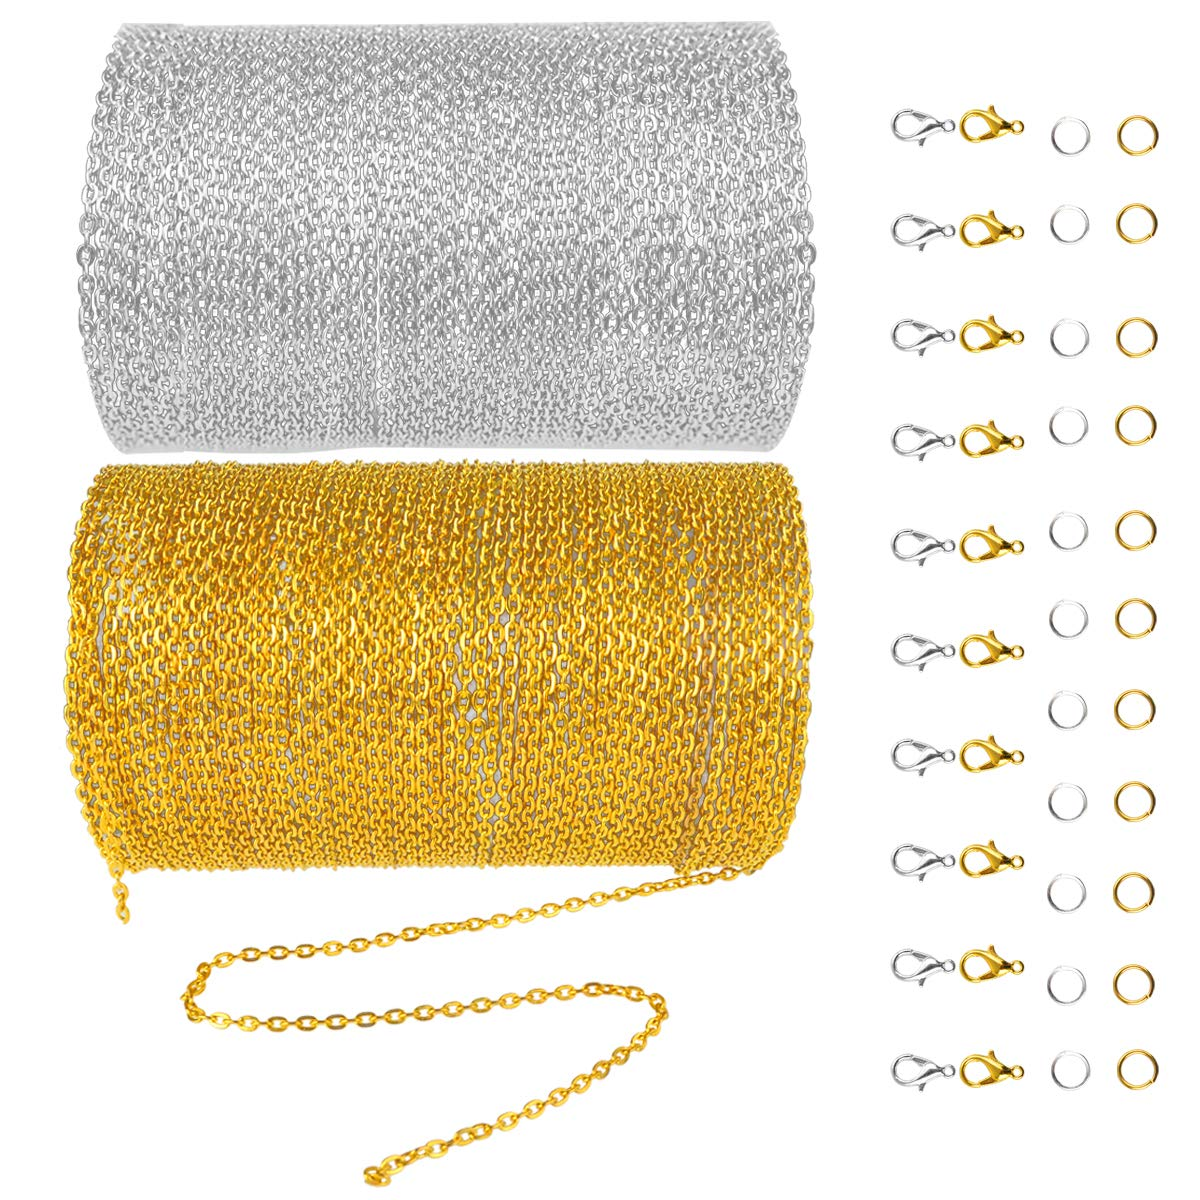 Miayon 33 Feet Metal Link Chain Necklaces with 20 Lobster Clasps and 30 Jump Rings for DIY Jewelry Making, Silver and Gold, 2mm) Cable-Chain